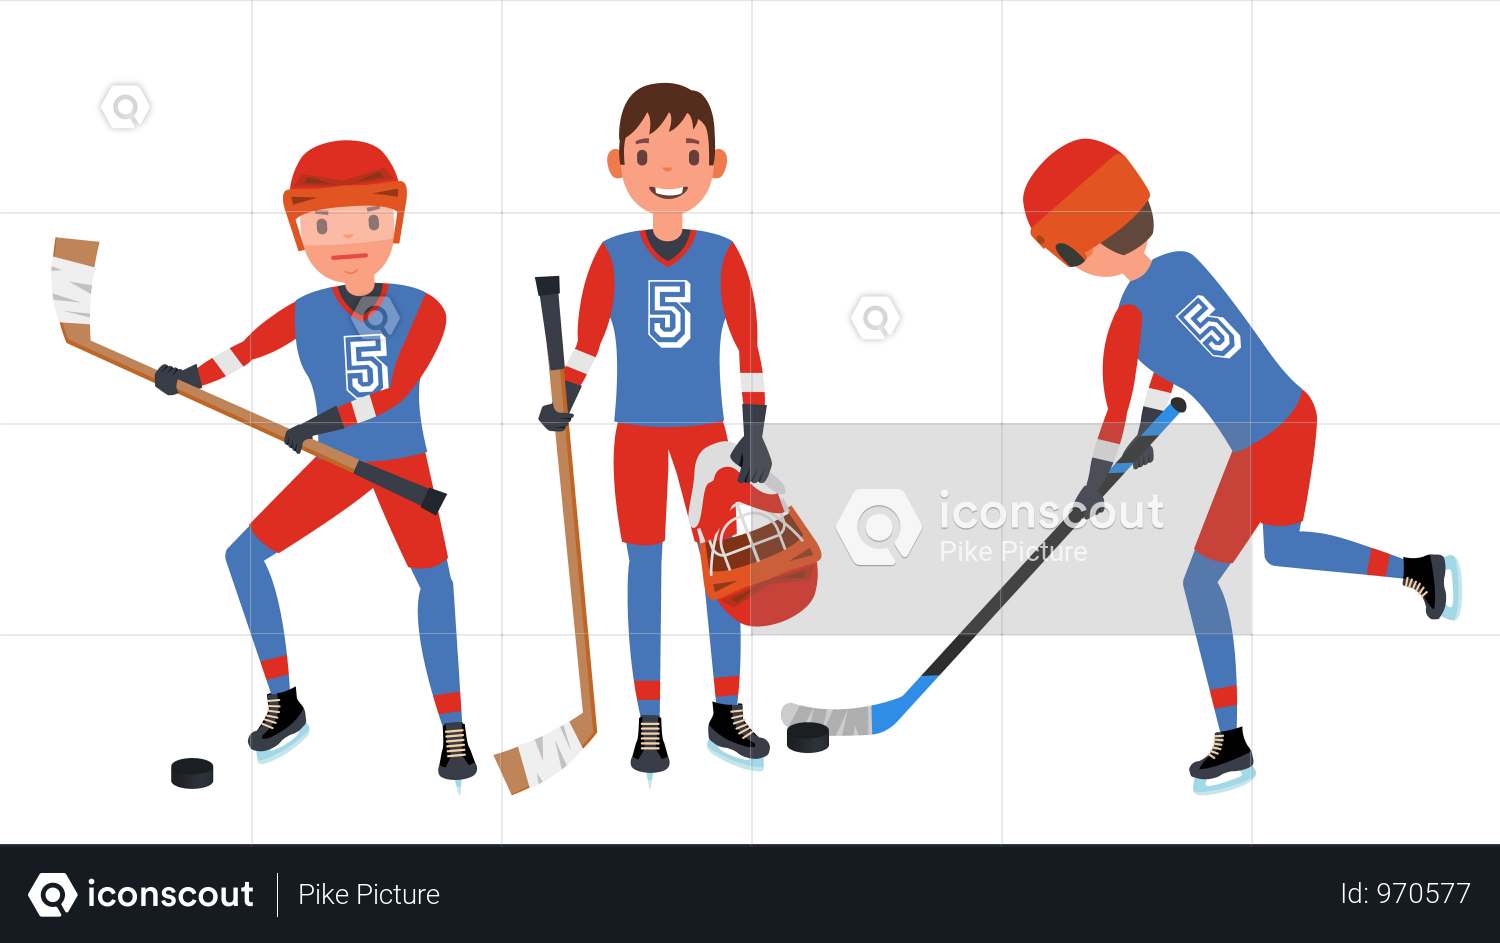 Classic Ice Hockey Player Illustration